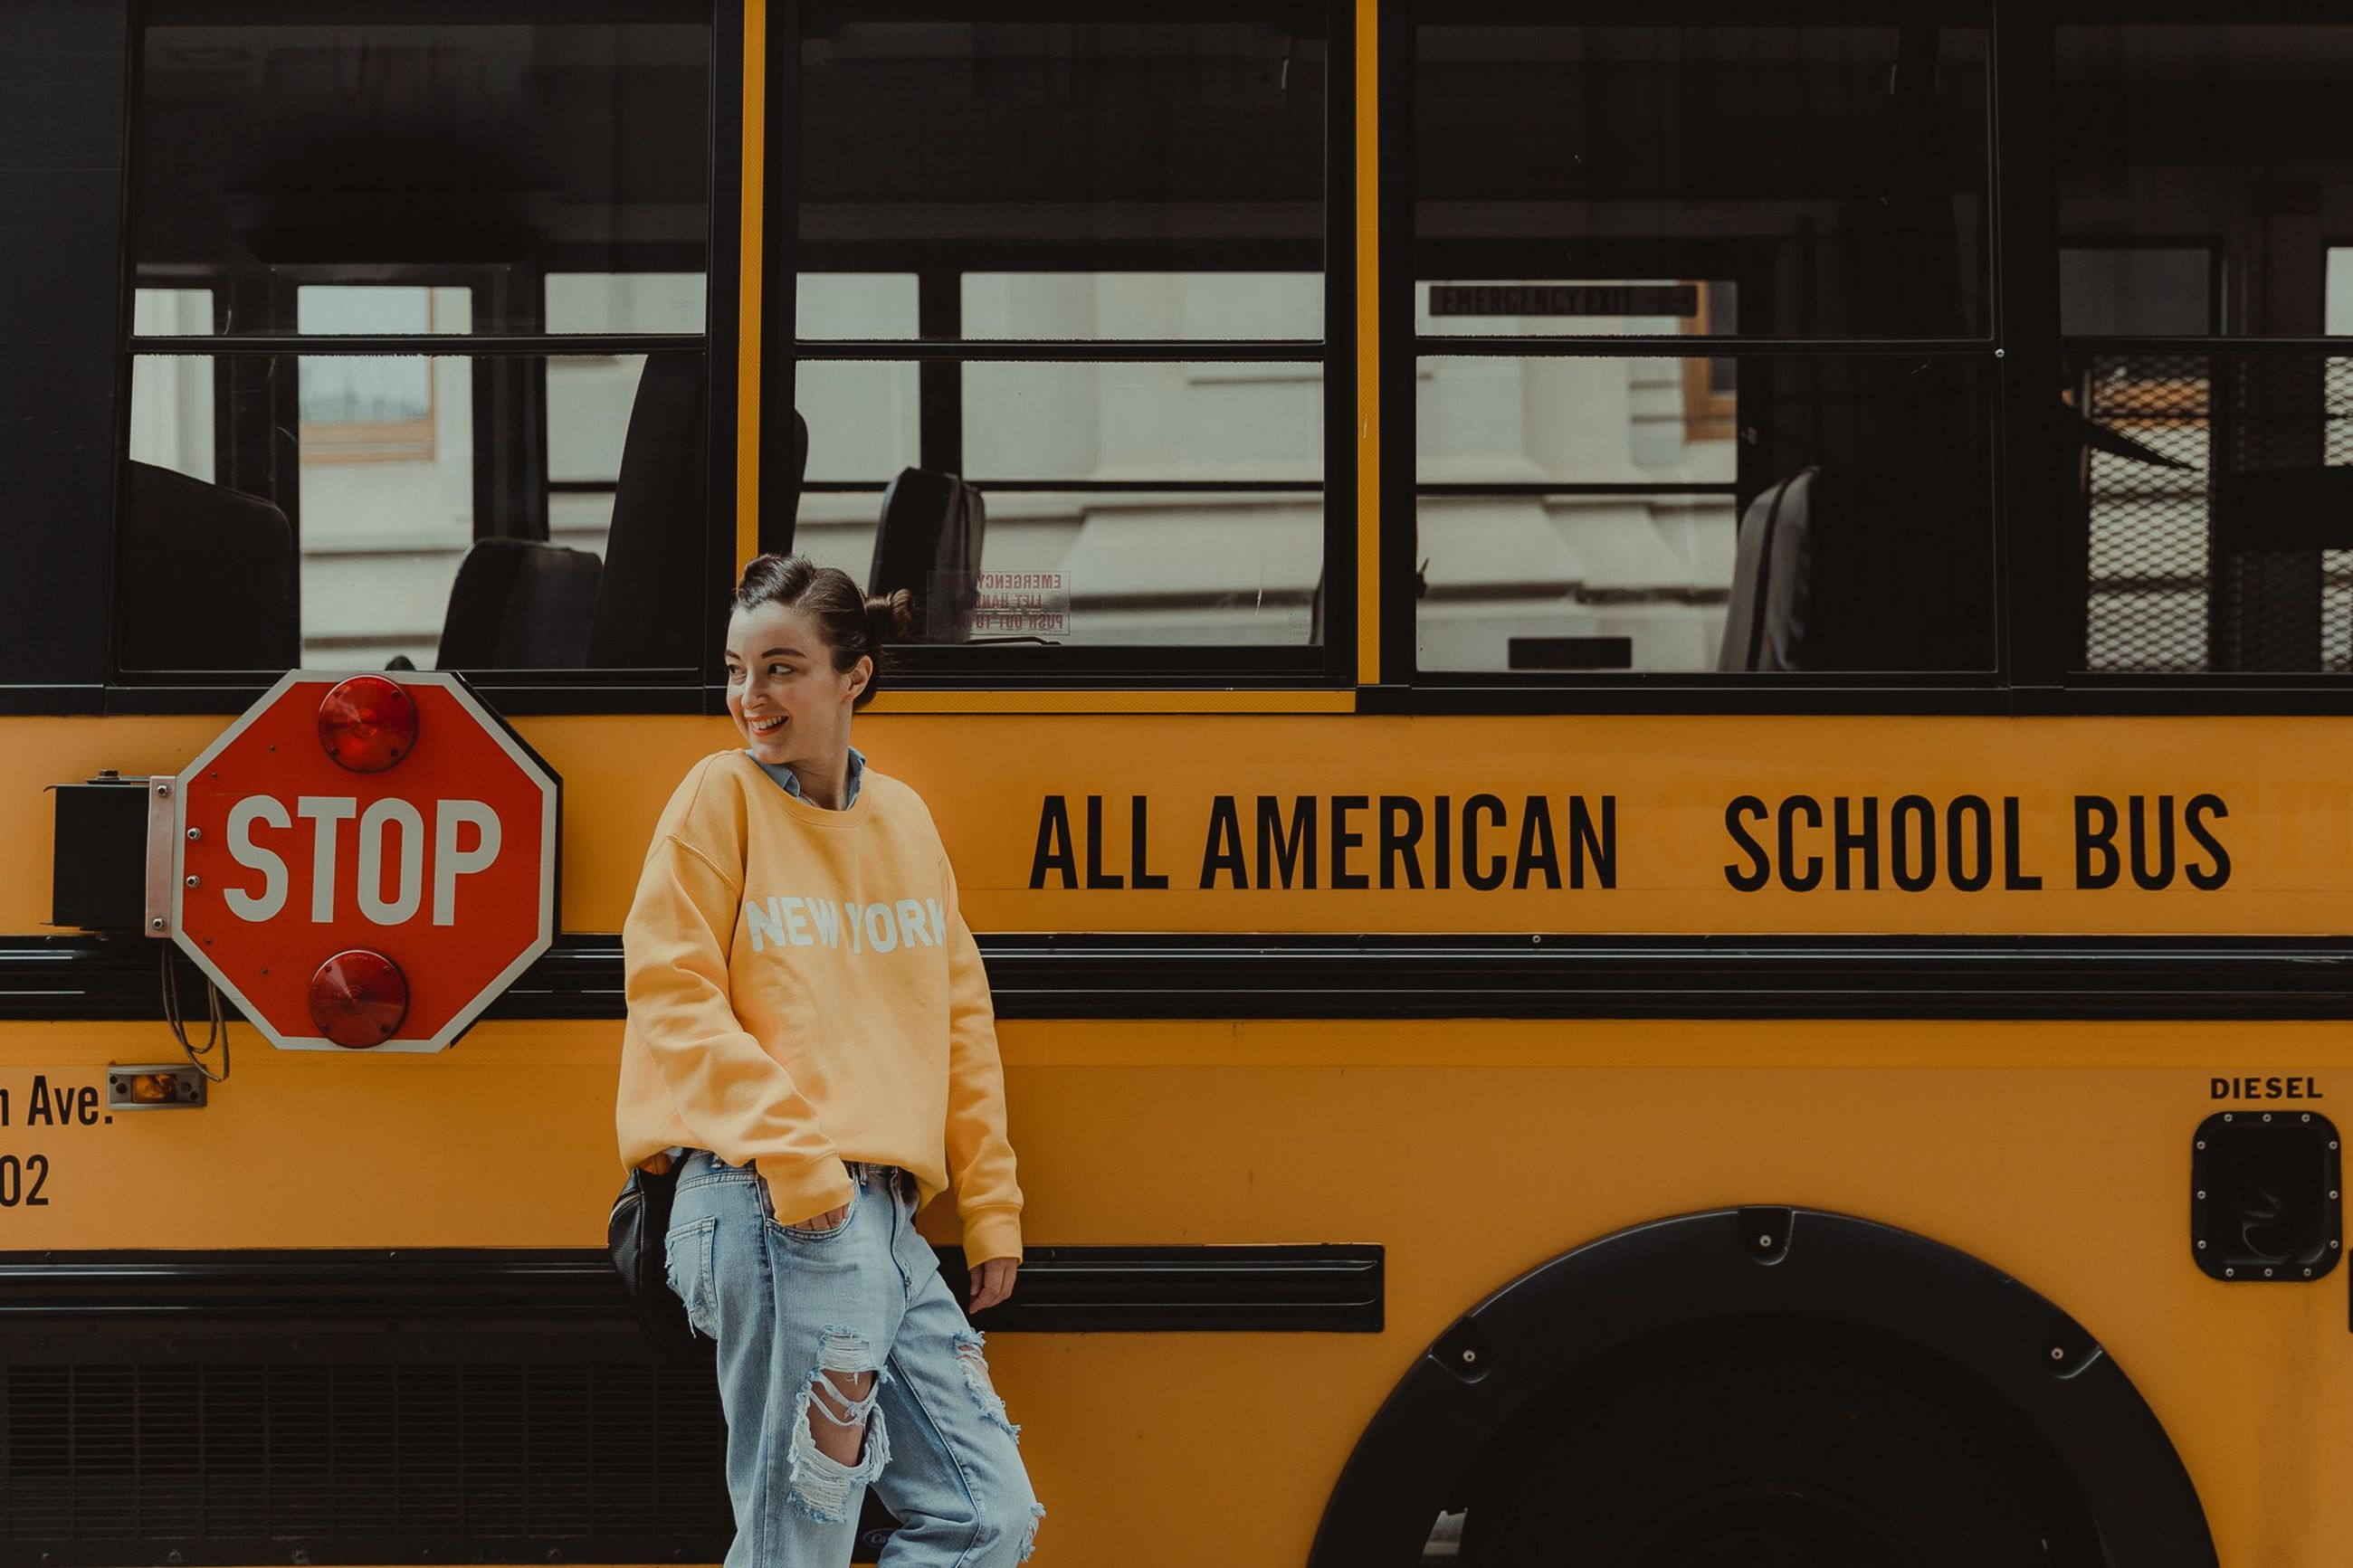 transportation, mode of transportation, real people, three quarter length, one person, yellow, public transportation, front view, bus, standing, casual clothing, lifestyles, land vehicle, leisure activity, school bus, text, communication, rail transportation